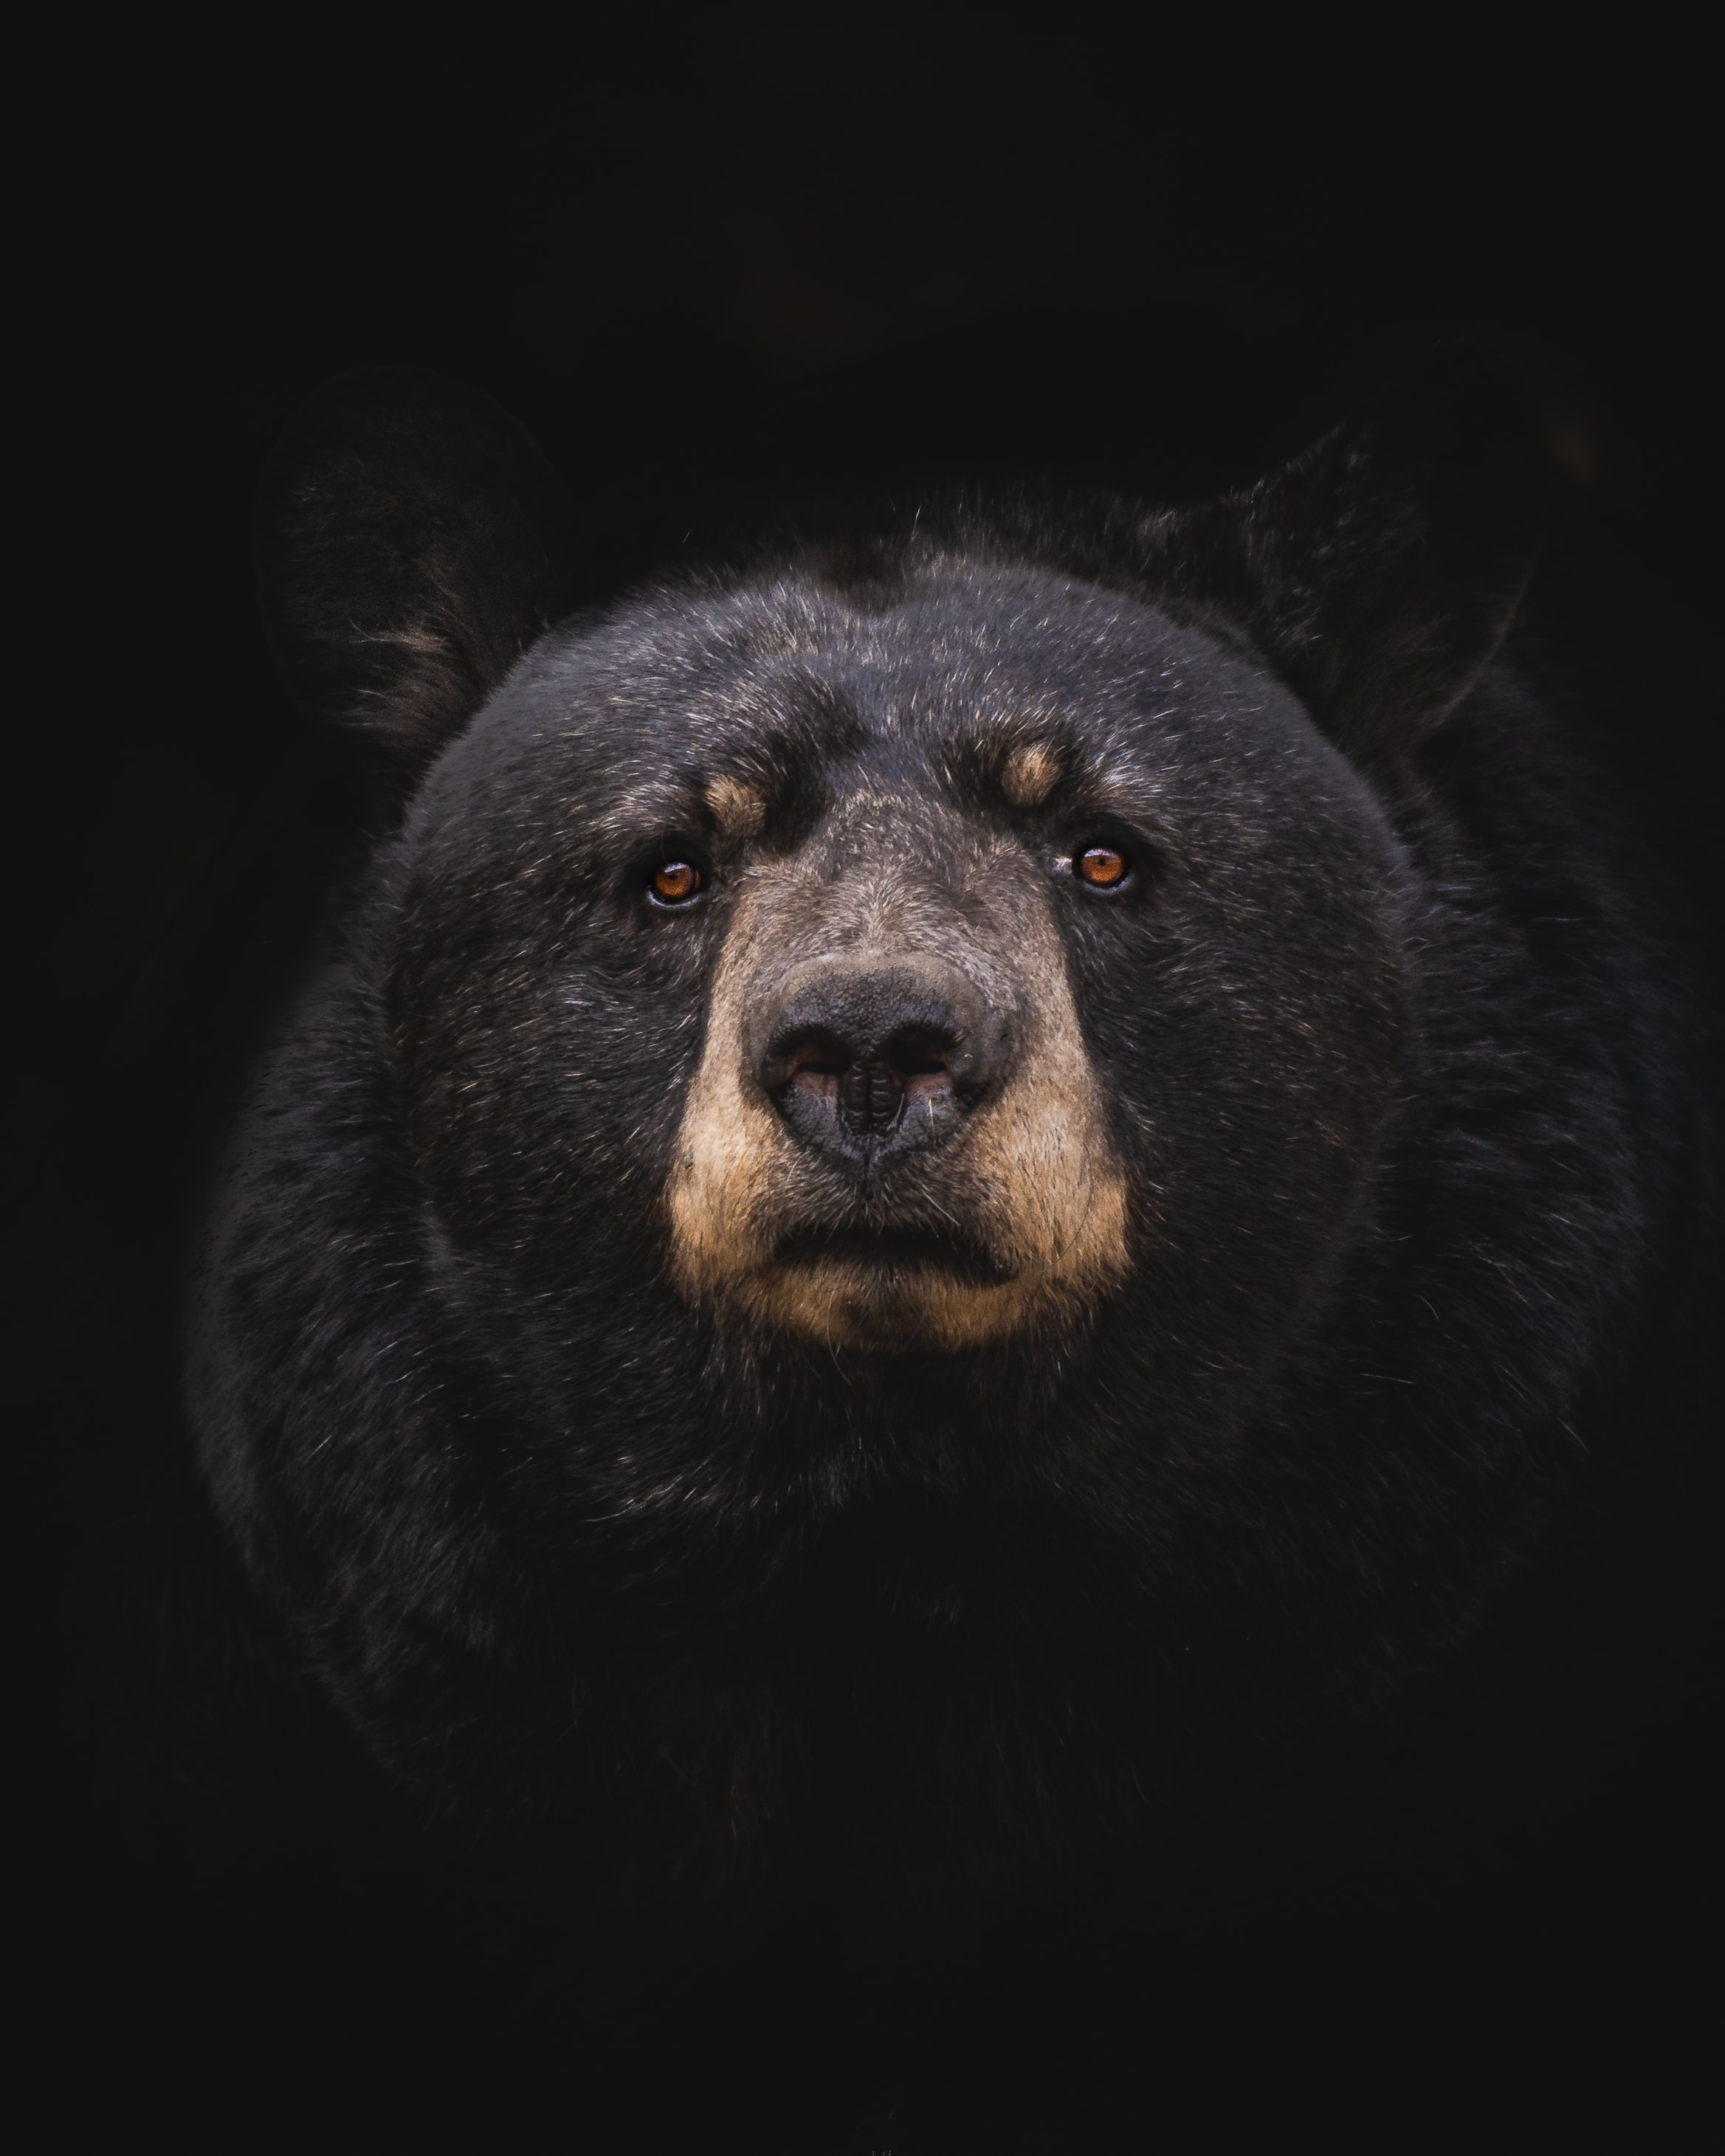 Bear Sighted in Ste. Genevieve